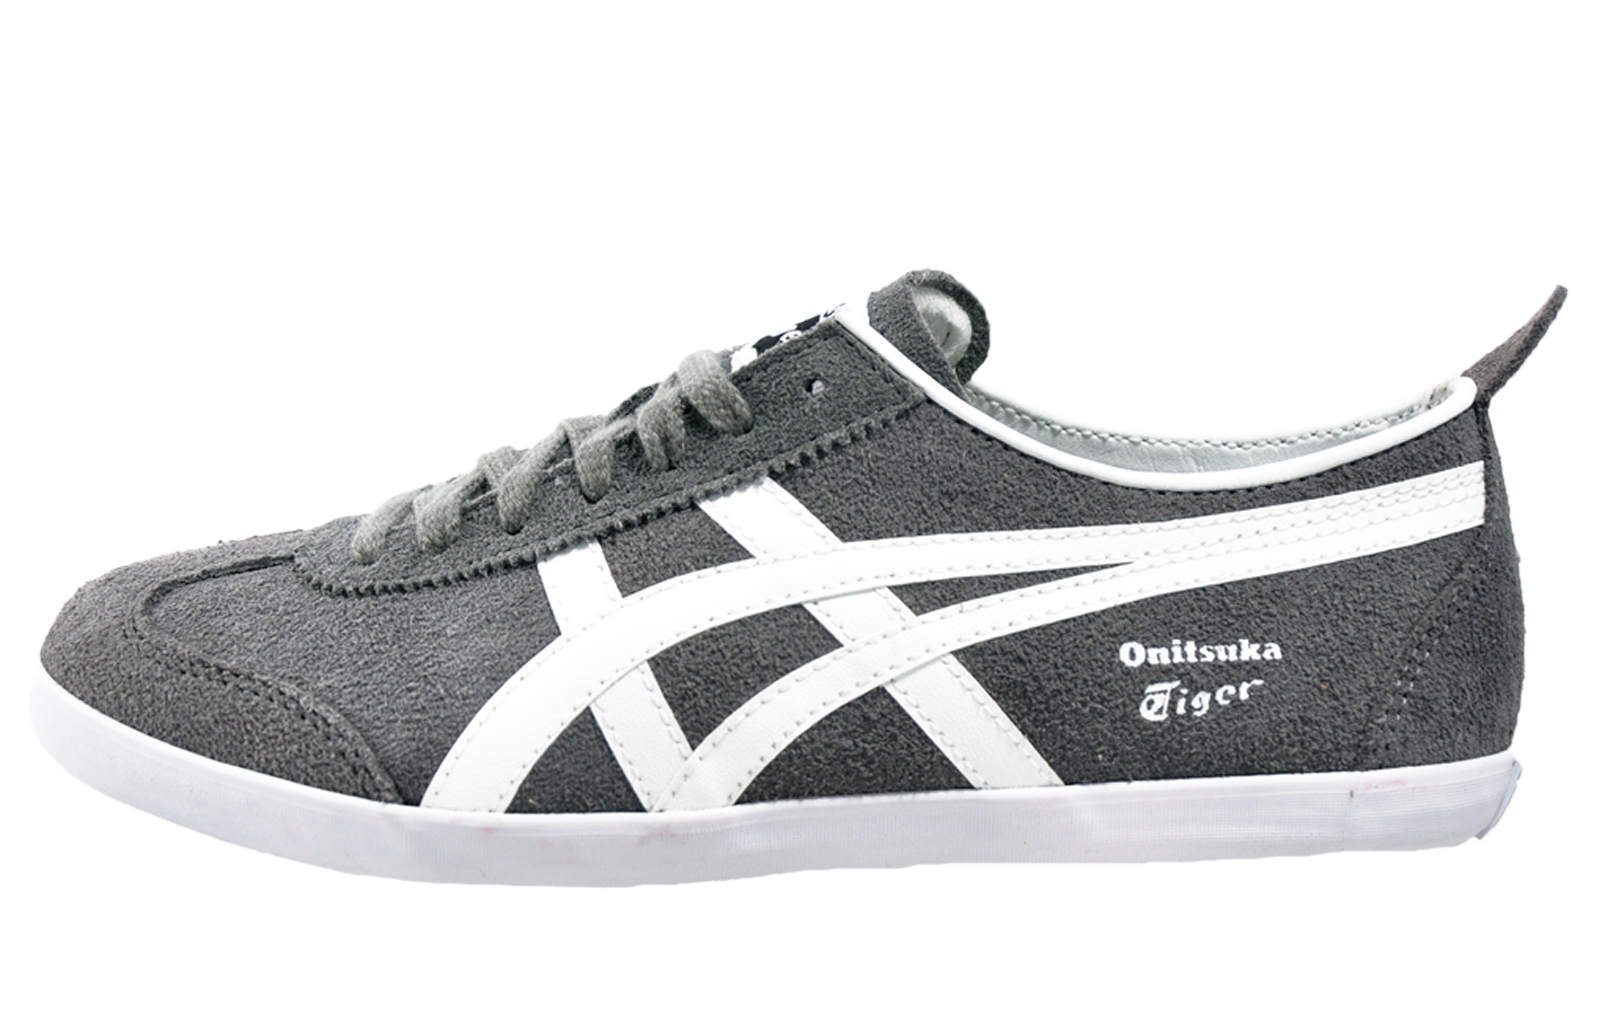 onitsuka tiger mexico 66 vulc uni casual classic suede leather trainers grey ebay. Black Bedroom Furniture Sets. Home Design Ideas